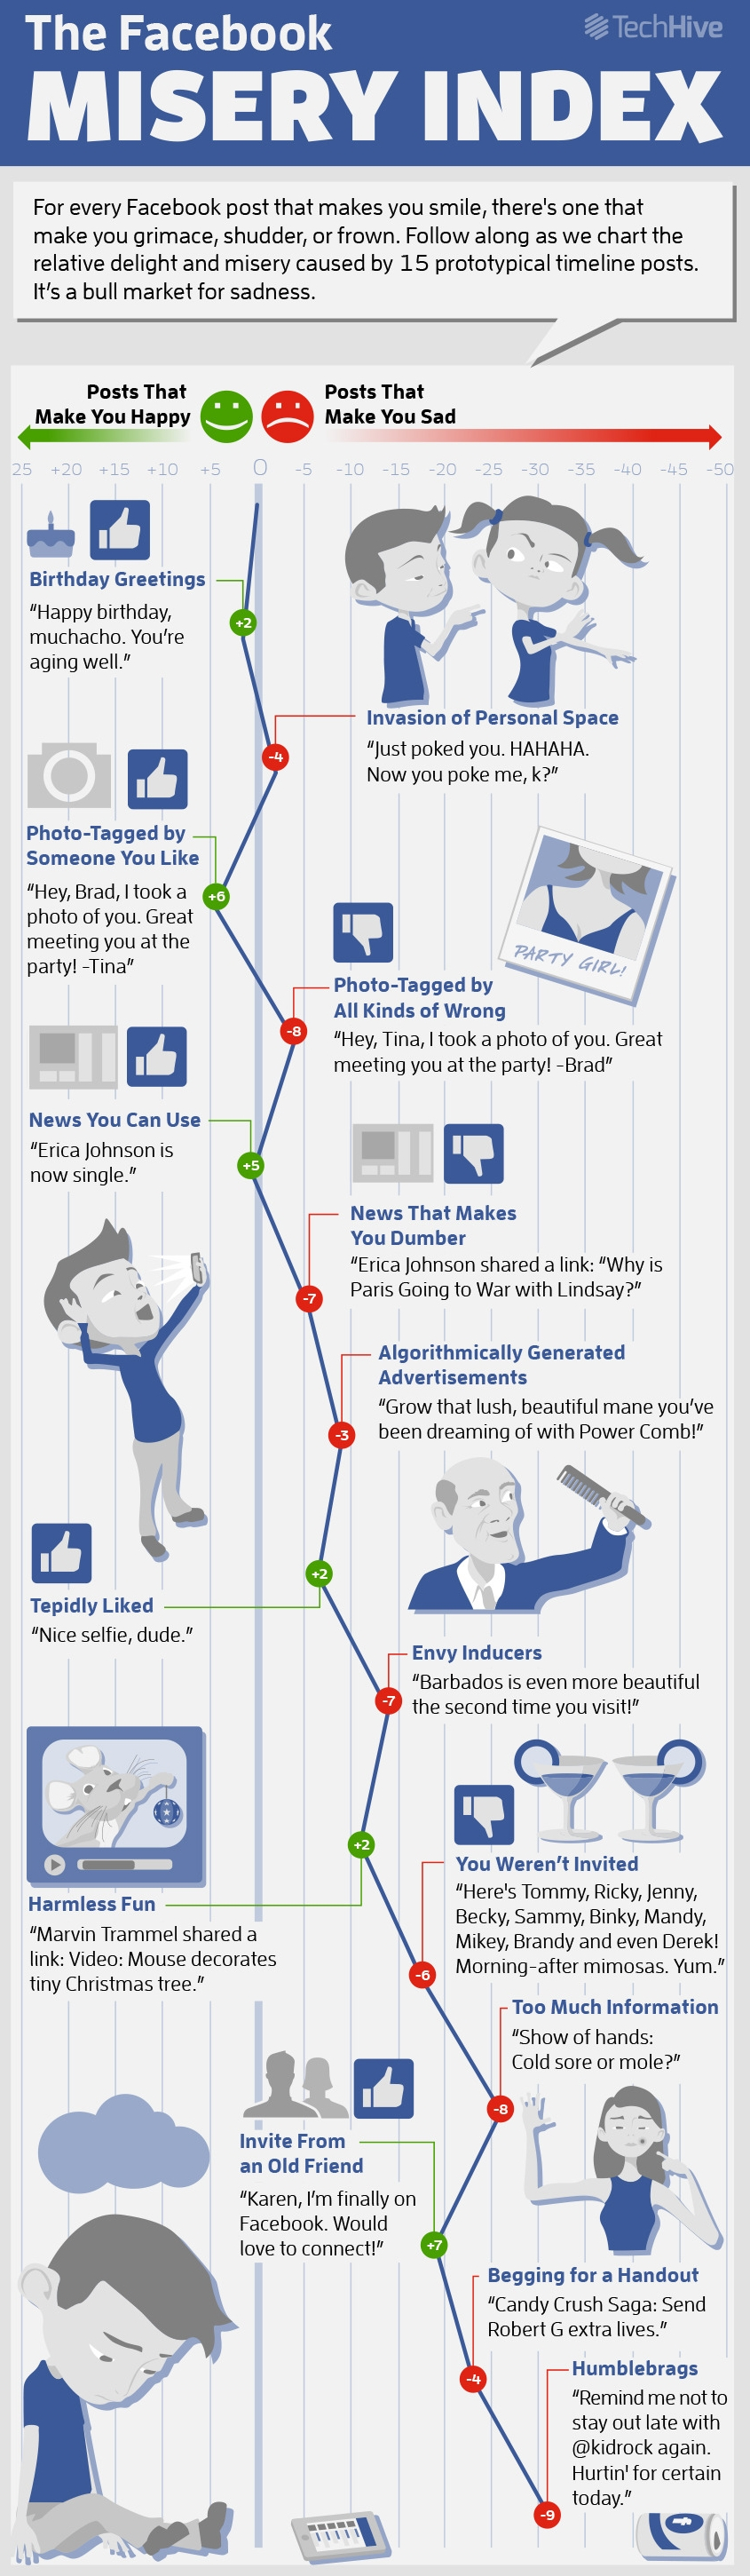 TechHiveFacebookMiseryInfographic (1)